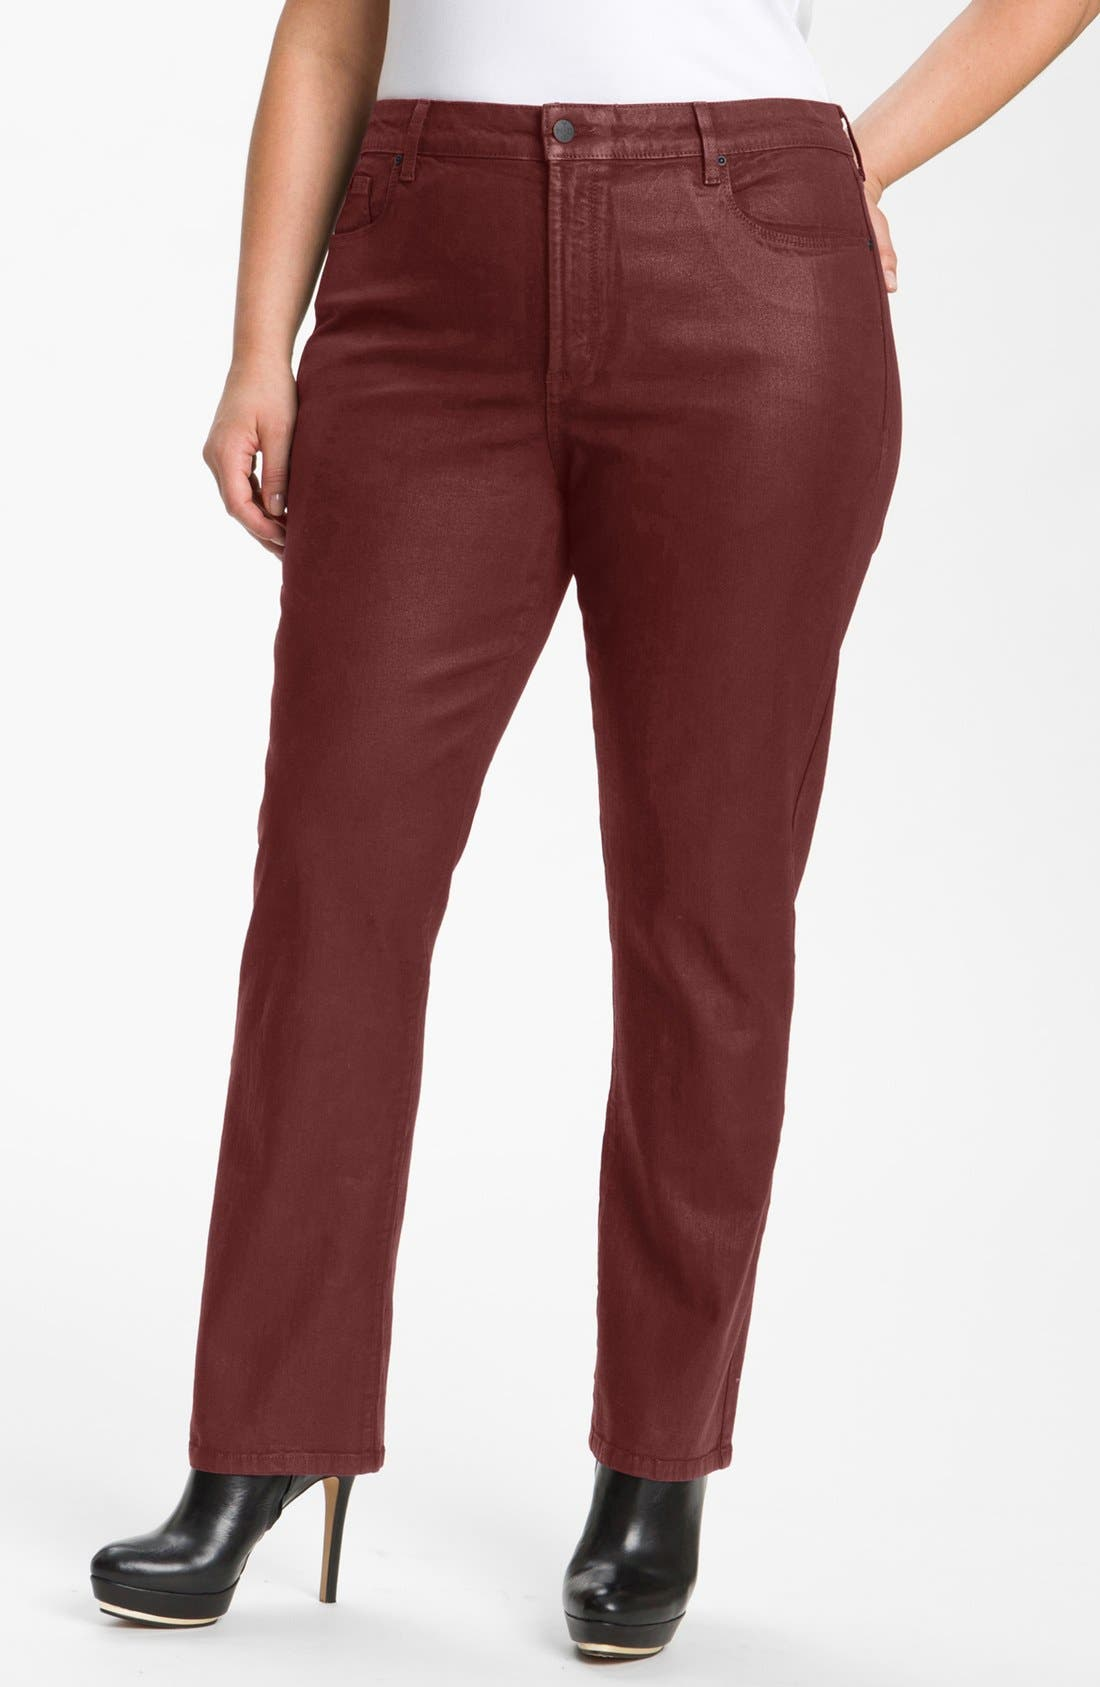 Alternate Image 1 Selected - NYDJ 'Sheri' Coated Stretch Skinny Jeans (Plus)